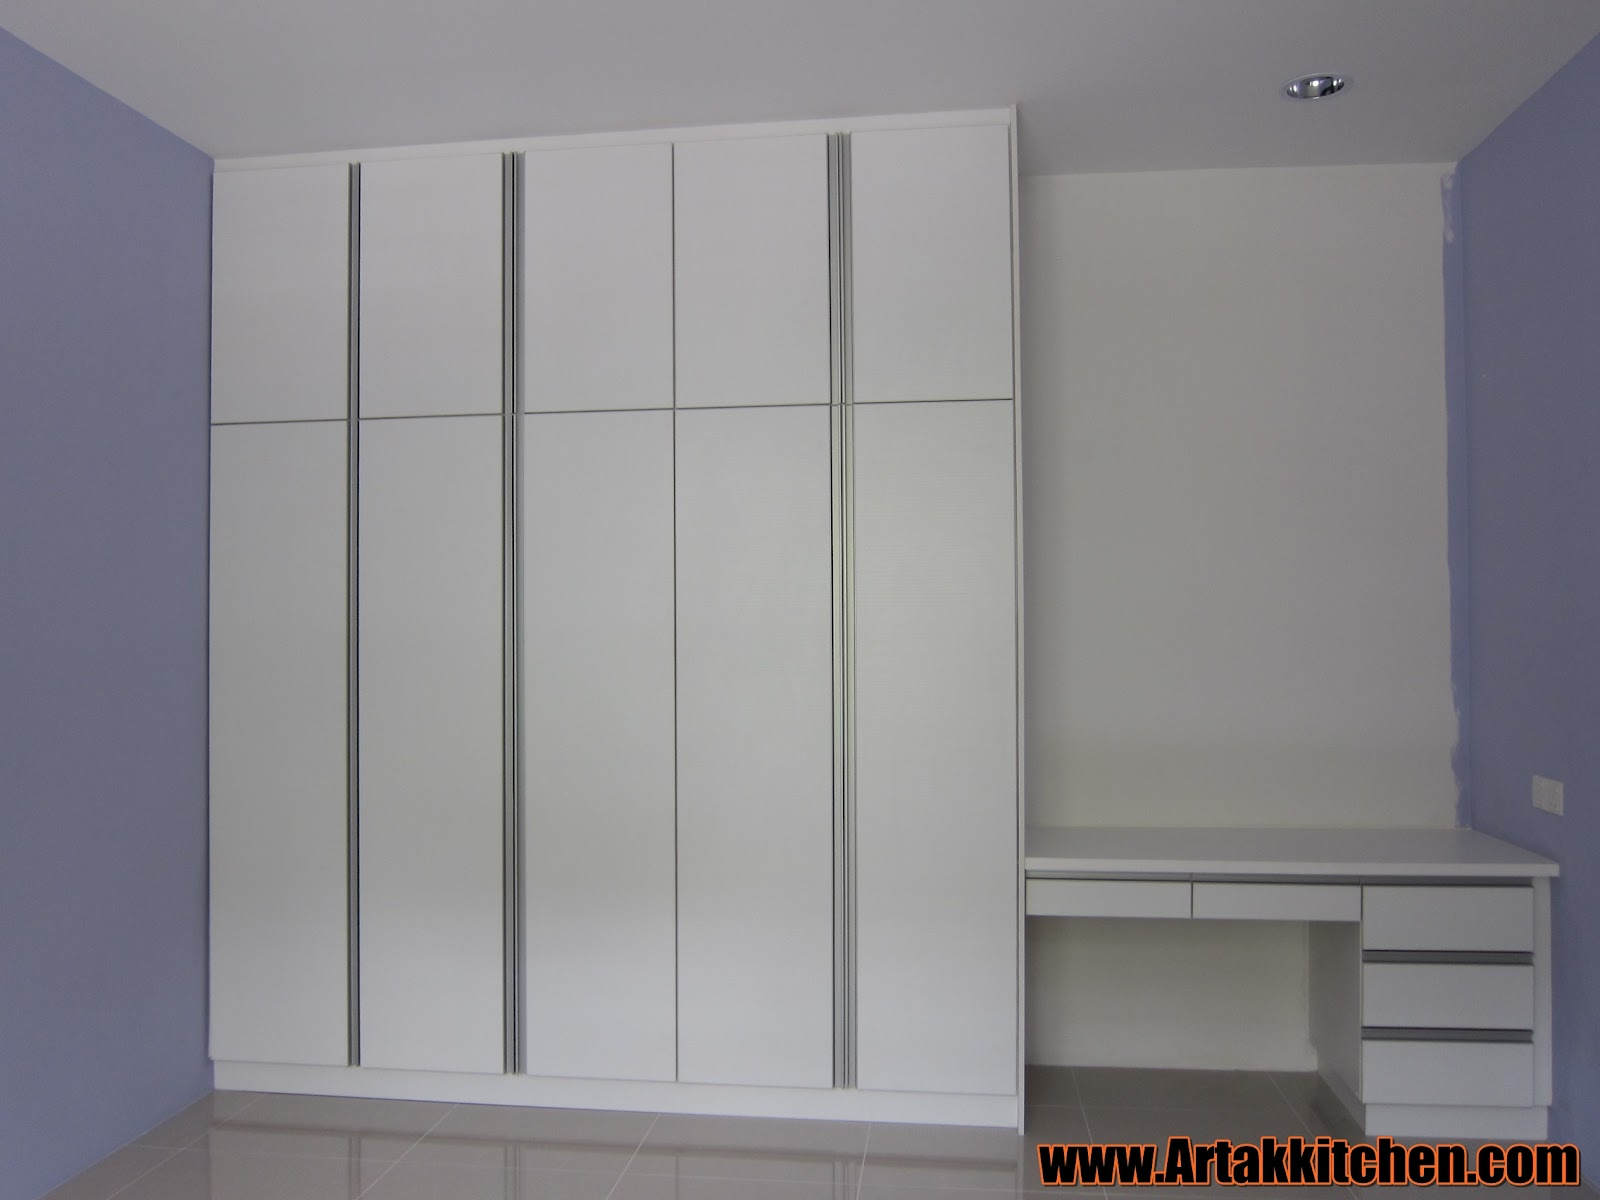 Swing door wardrobe with study table